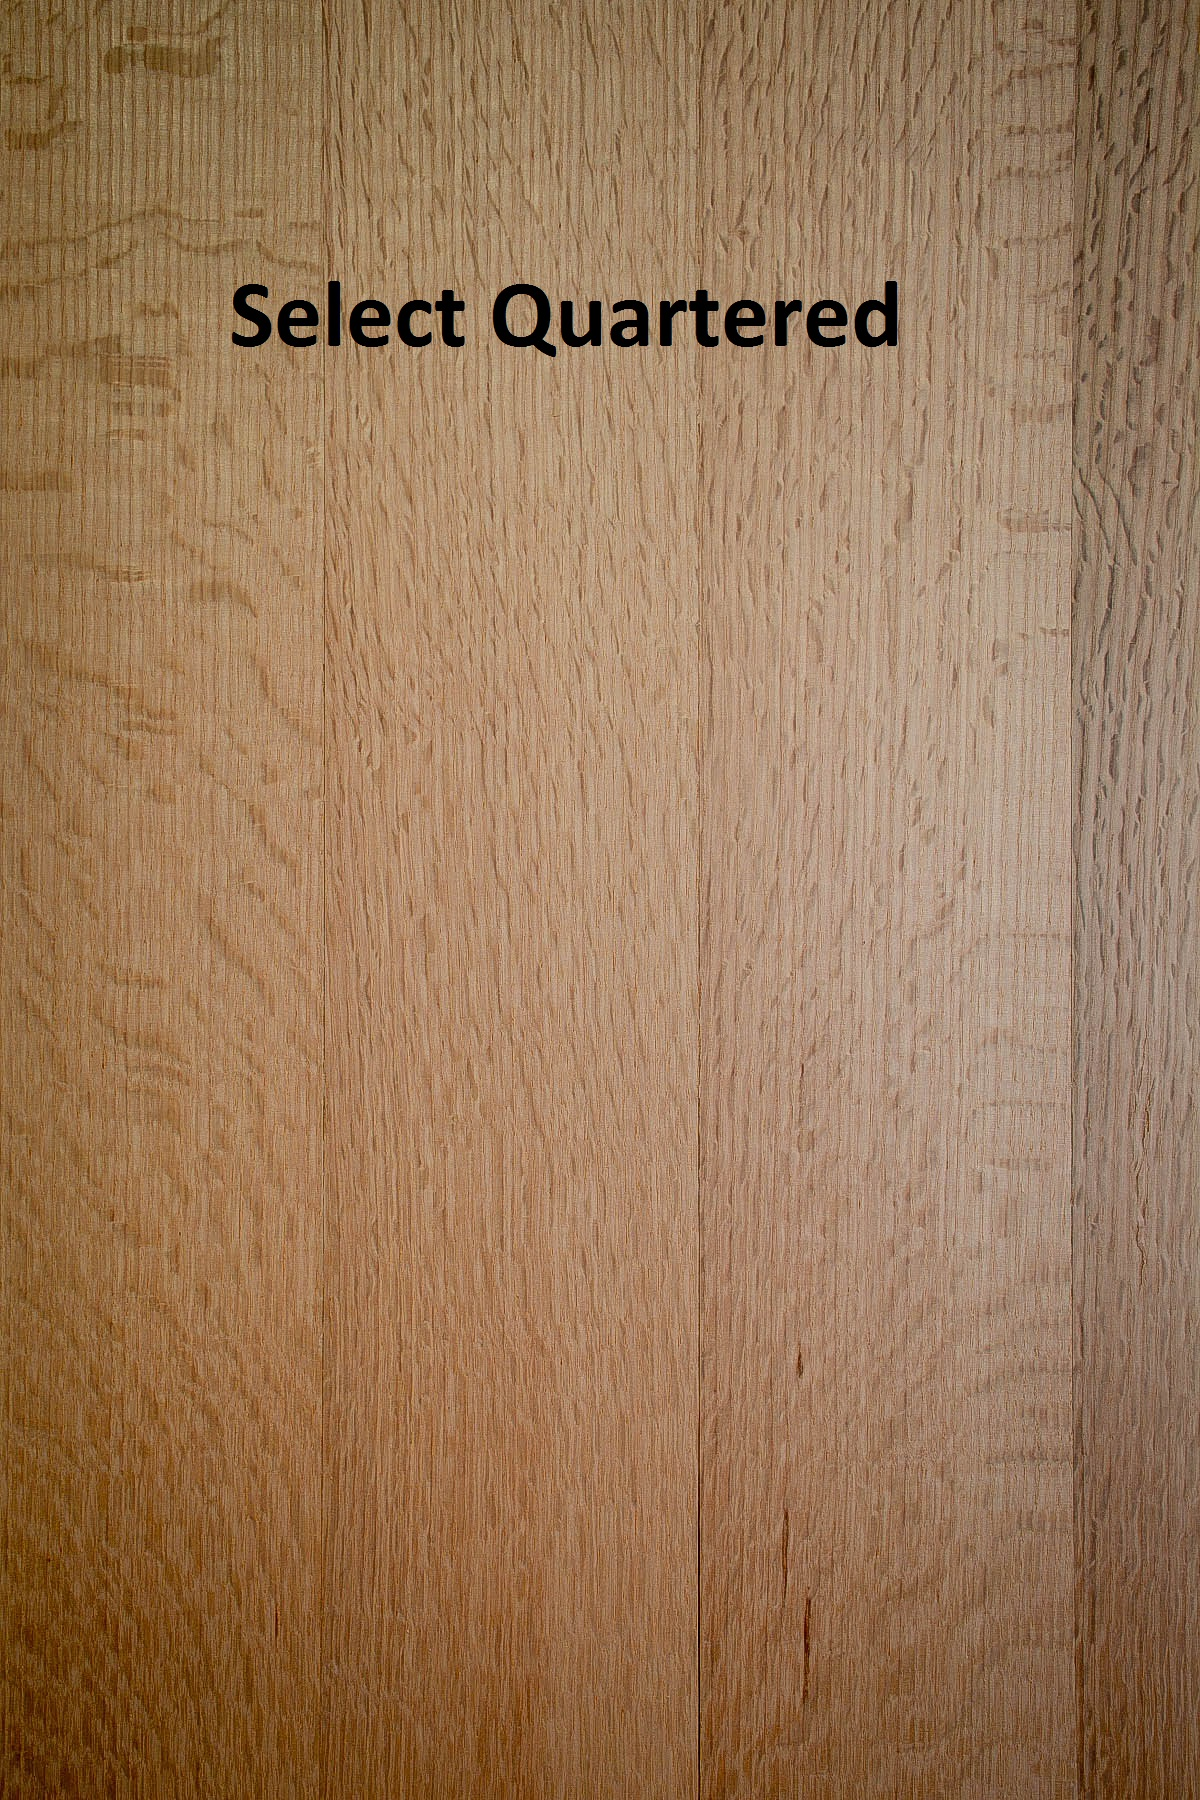 Unfinished Solid Red Oak RQ Rift Only Quartered Only X 34  PC Hardwood Floors